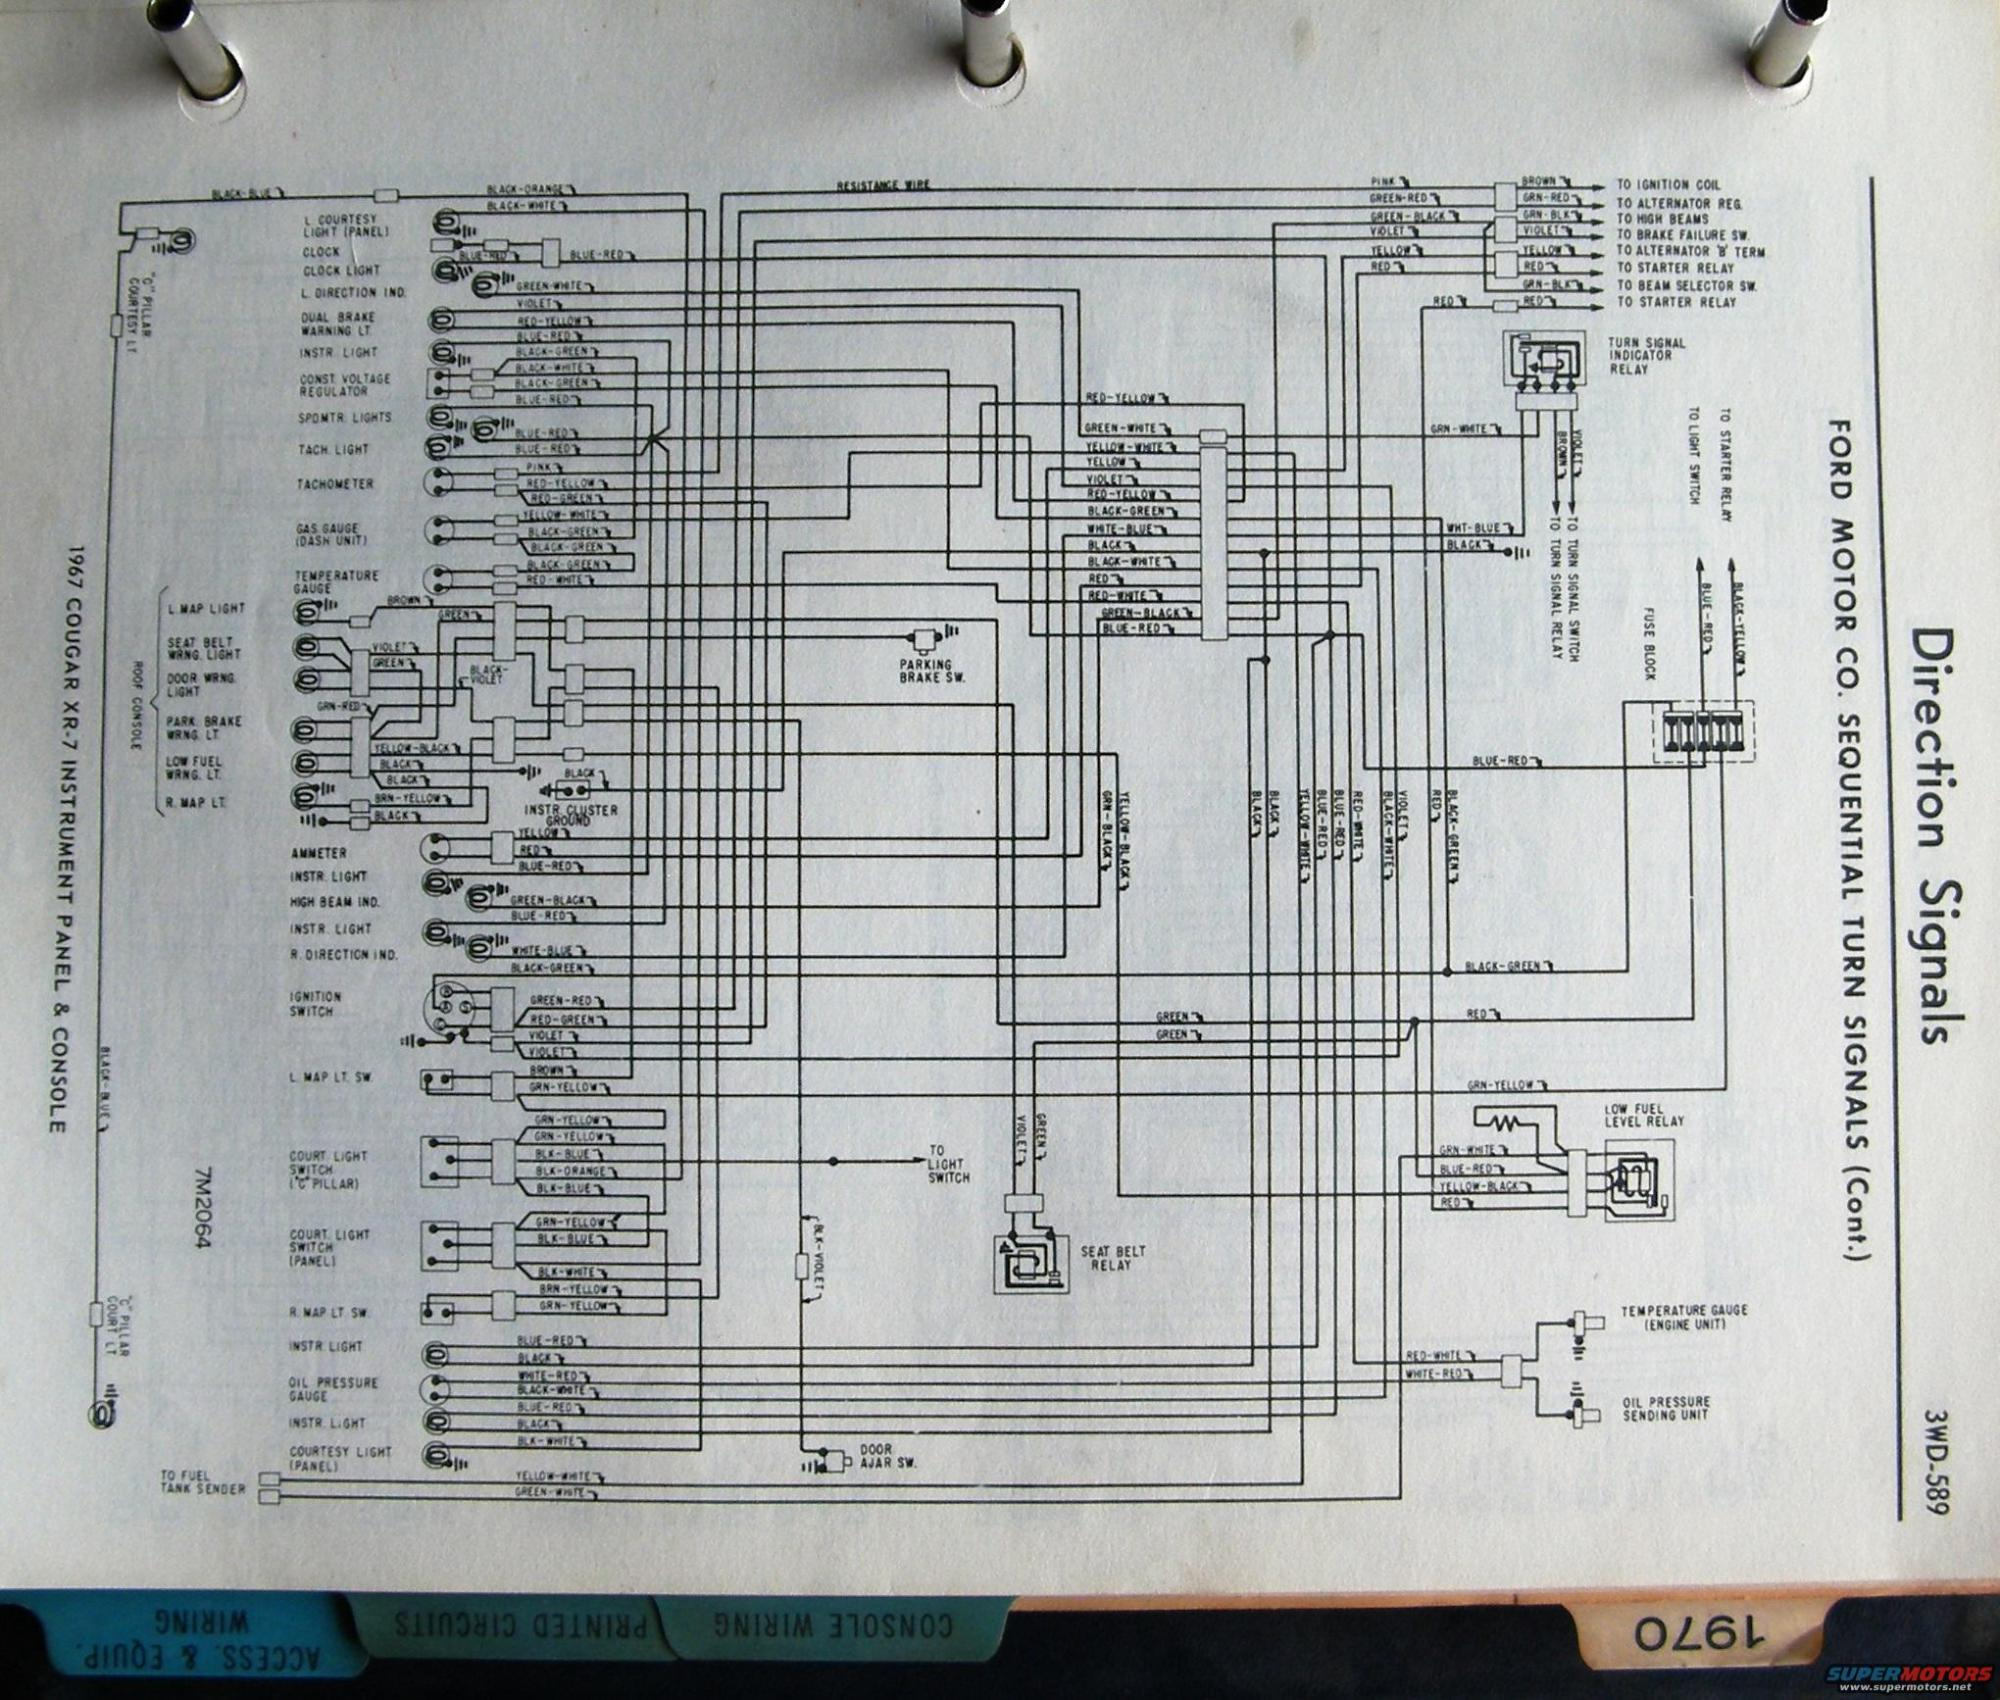 hight resolution of mercury cougar fuel pump wiring diagram simple wiring schema 1969 mercury cougar wiring diagram 1967 mercury cougar wiring diagram